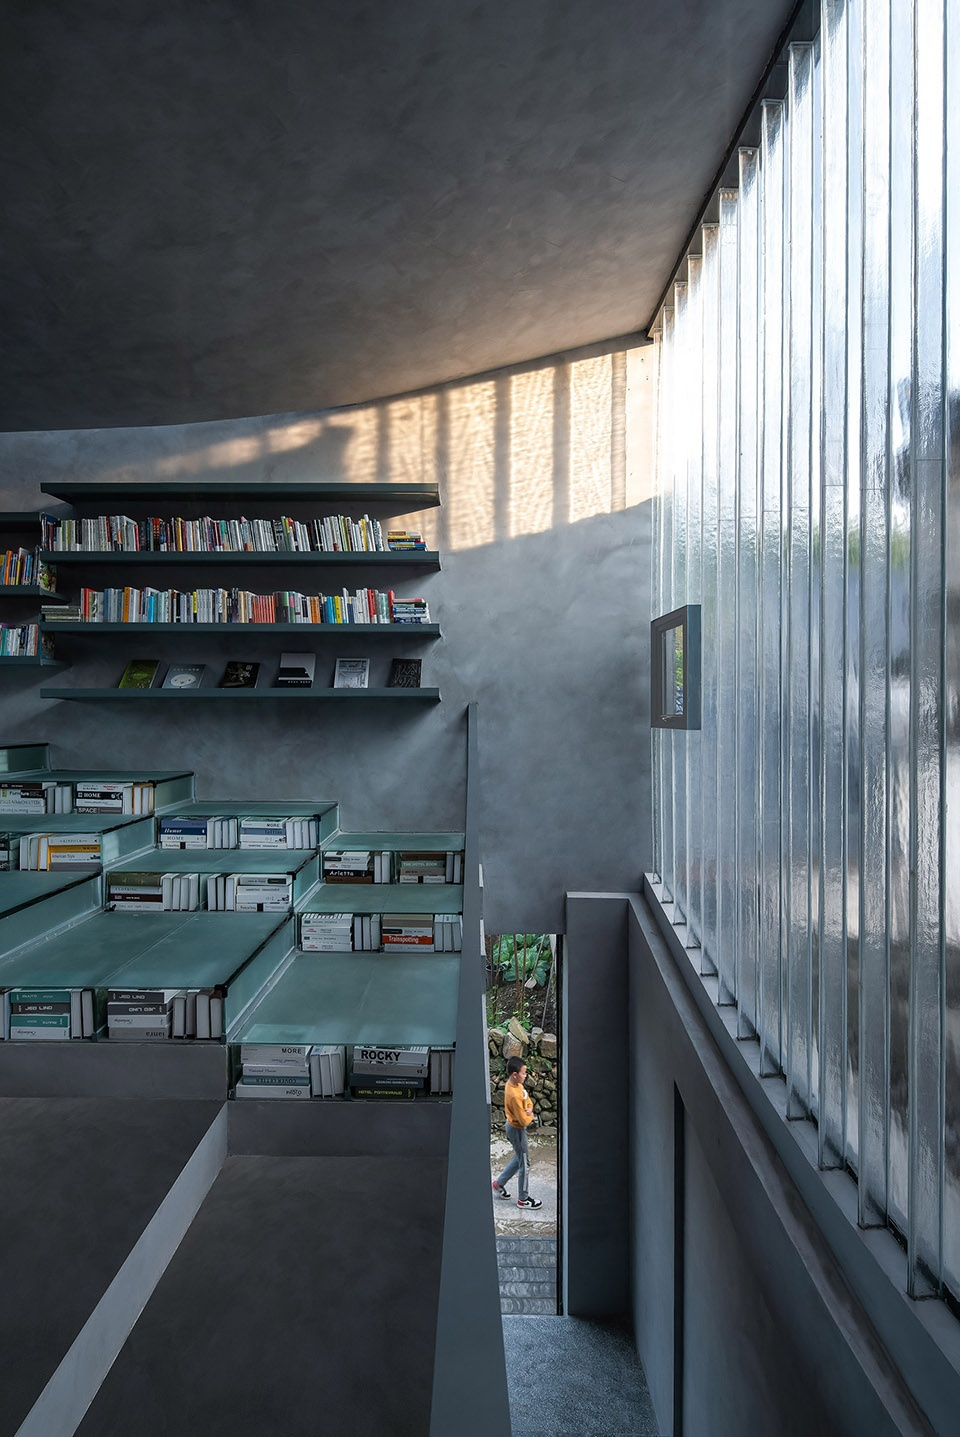 018-bridge-gallery-shanghai-joint-publishing-company-bookstore-at-taoyuan-huangshan-by-atelier-lai-960x1437.jpg